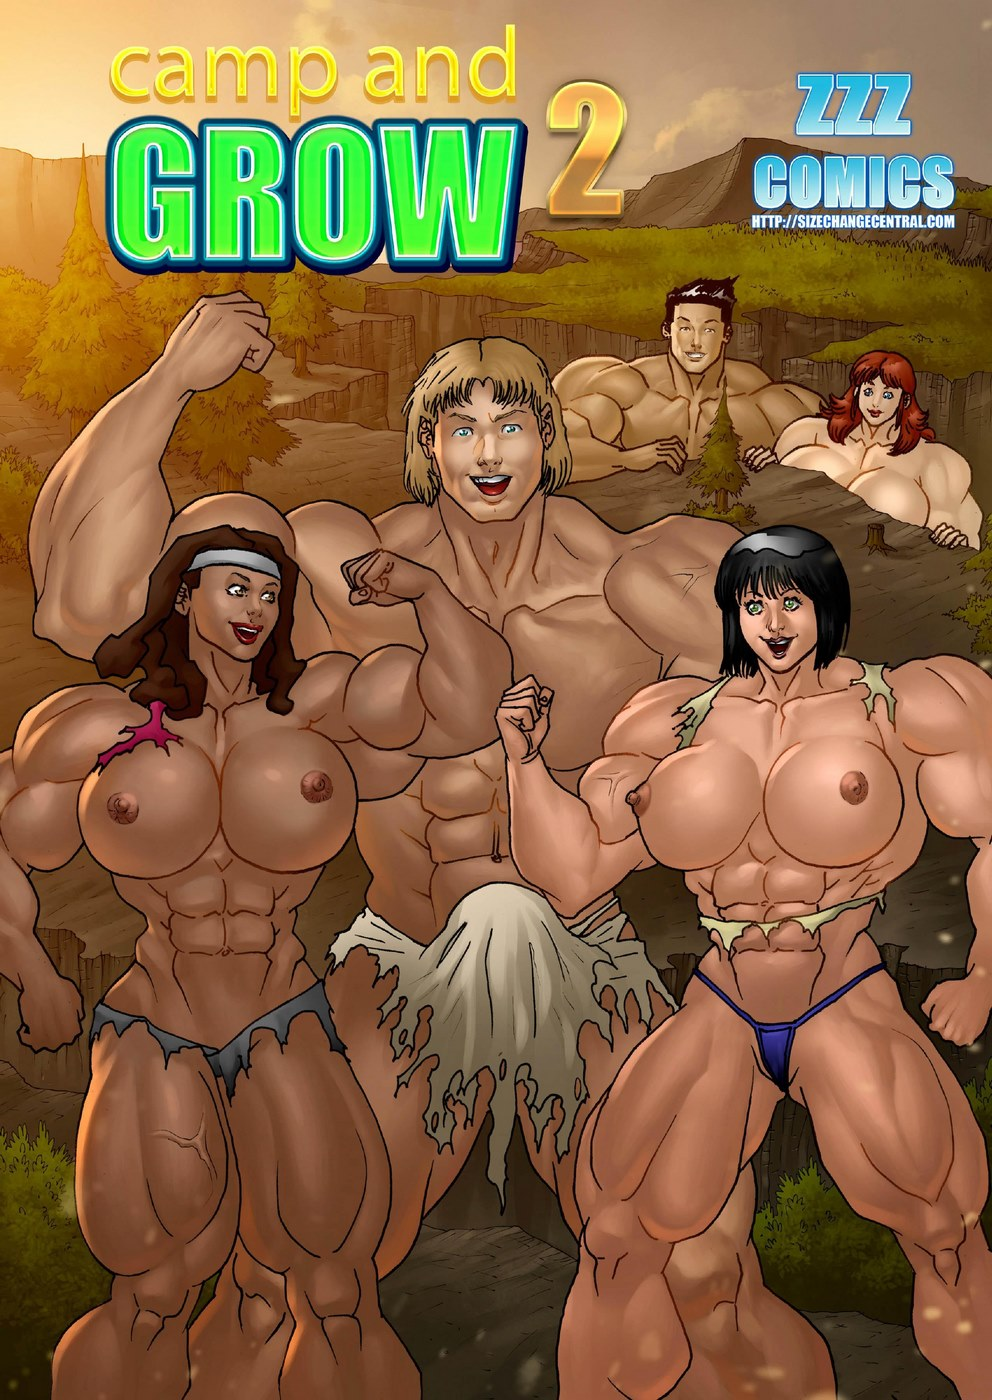 ZZZ- Camp and Grow issue 2 porn comics 8 muses